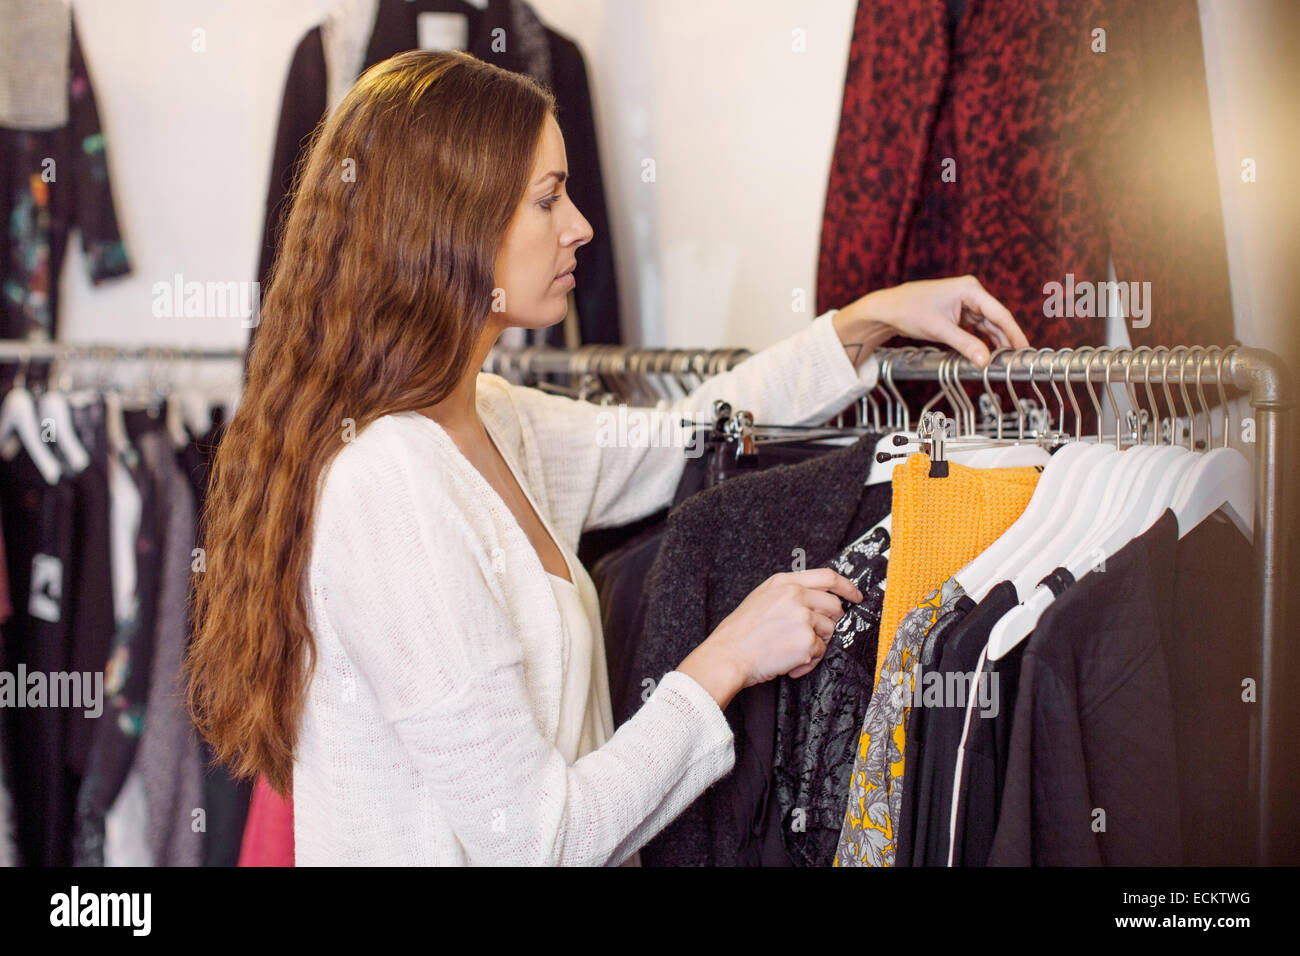 Female sales person arranging cloths in clothing store - Stock Image